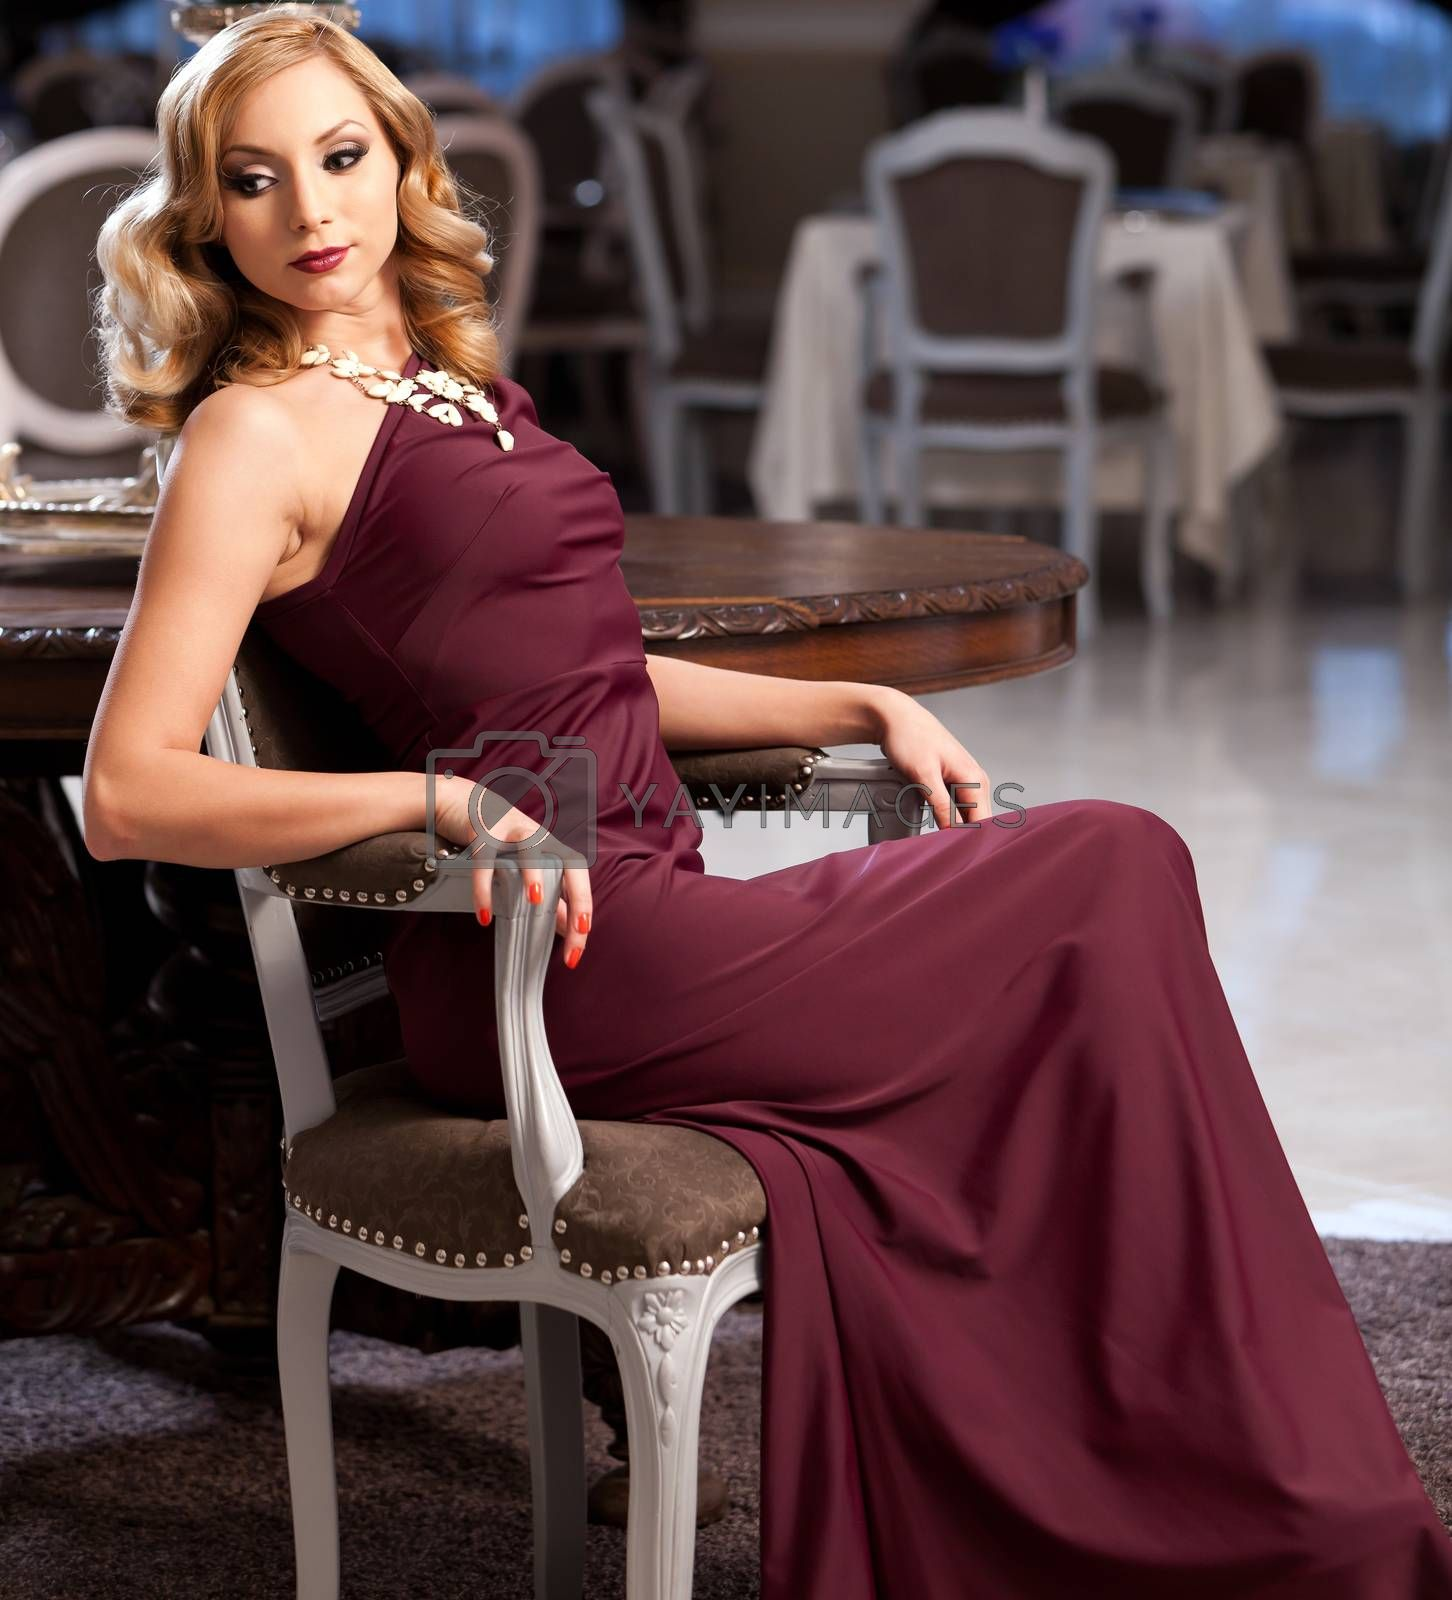 Beautiful blond in an elegant red dress. Please see more images from the same shoot.